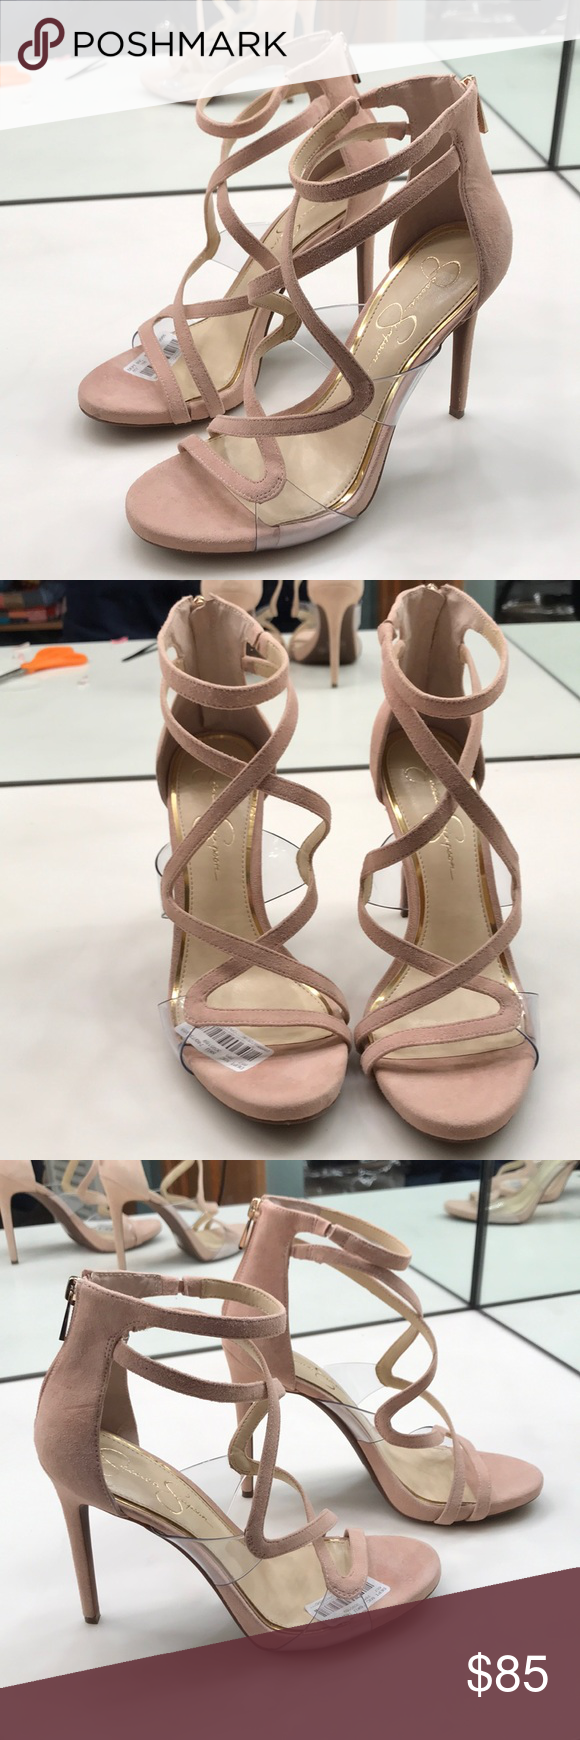 c883916b9b2 Pink Suede Jessica Simpson heels Super Cute Pink suede Jessica Simpson size  9.5 heels with rose gold zippers and a crisscross of suede and clear on the  ...